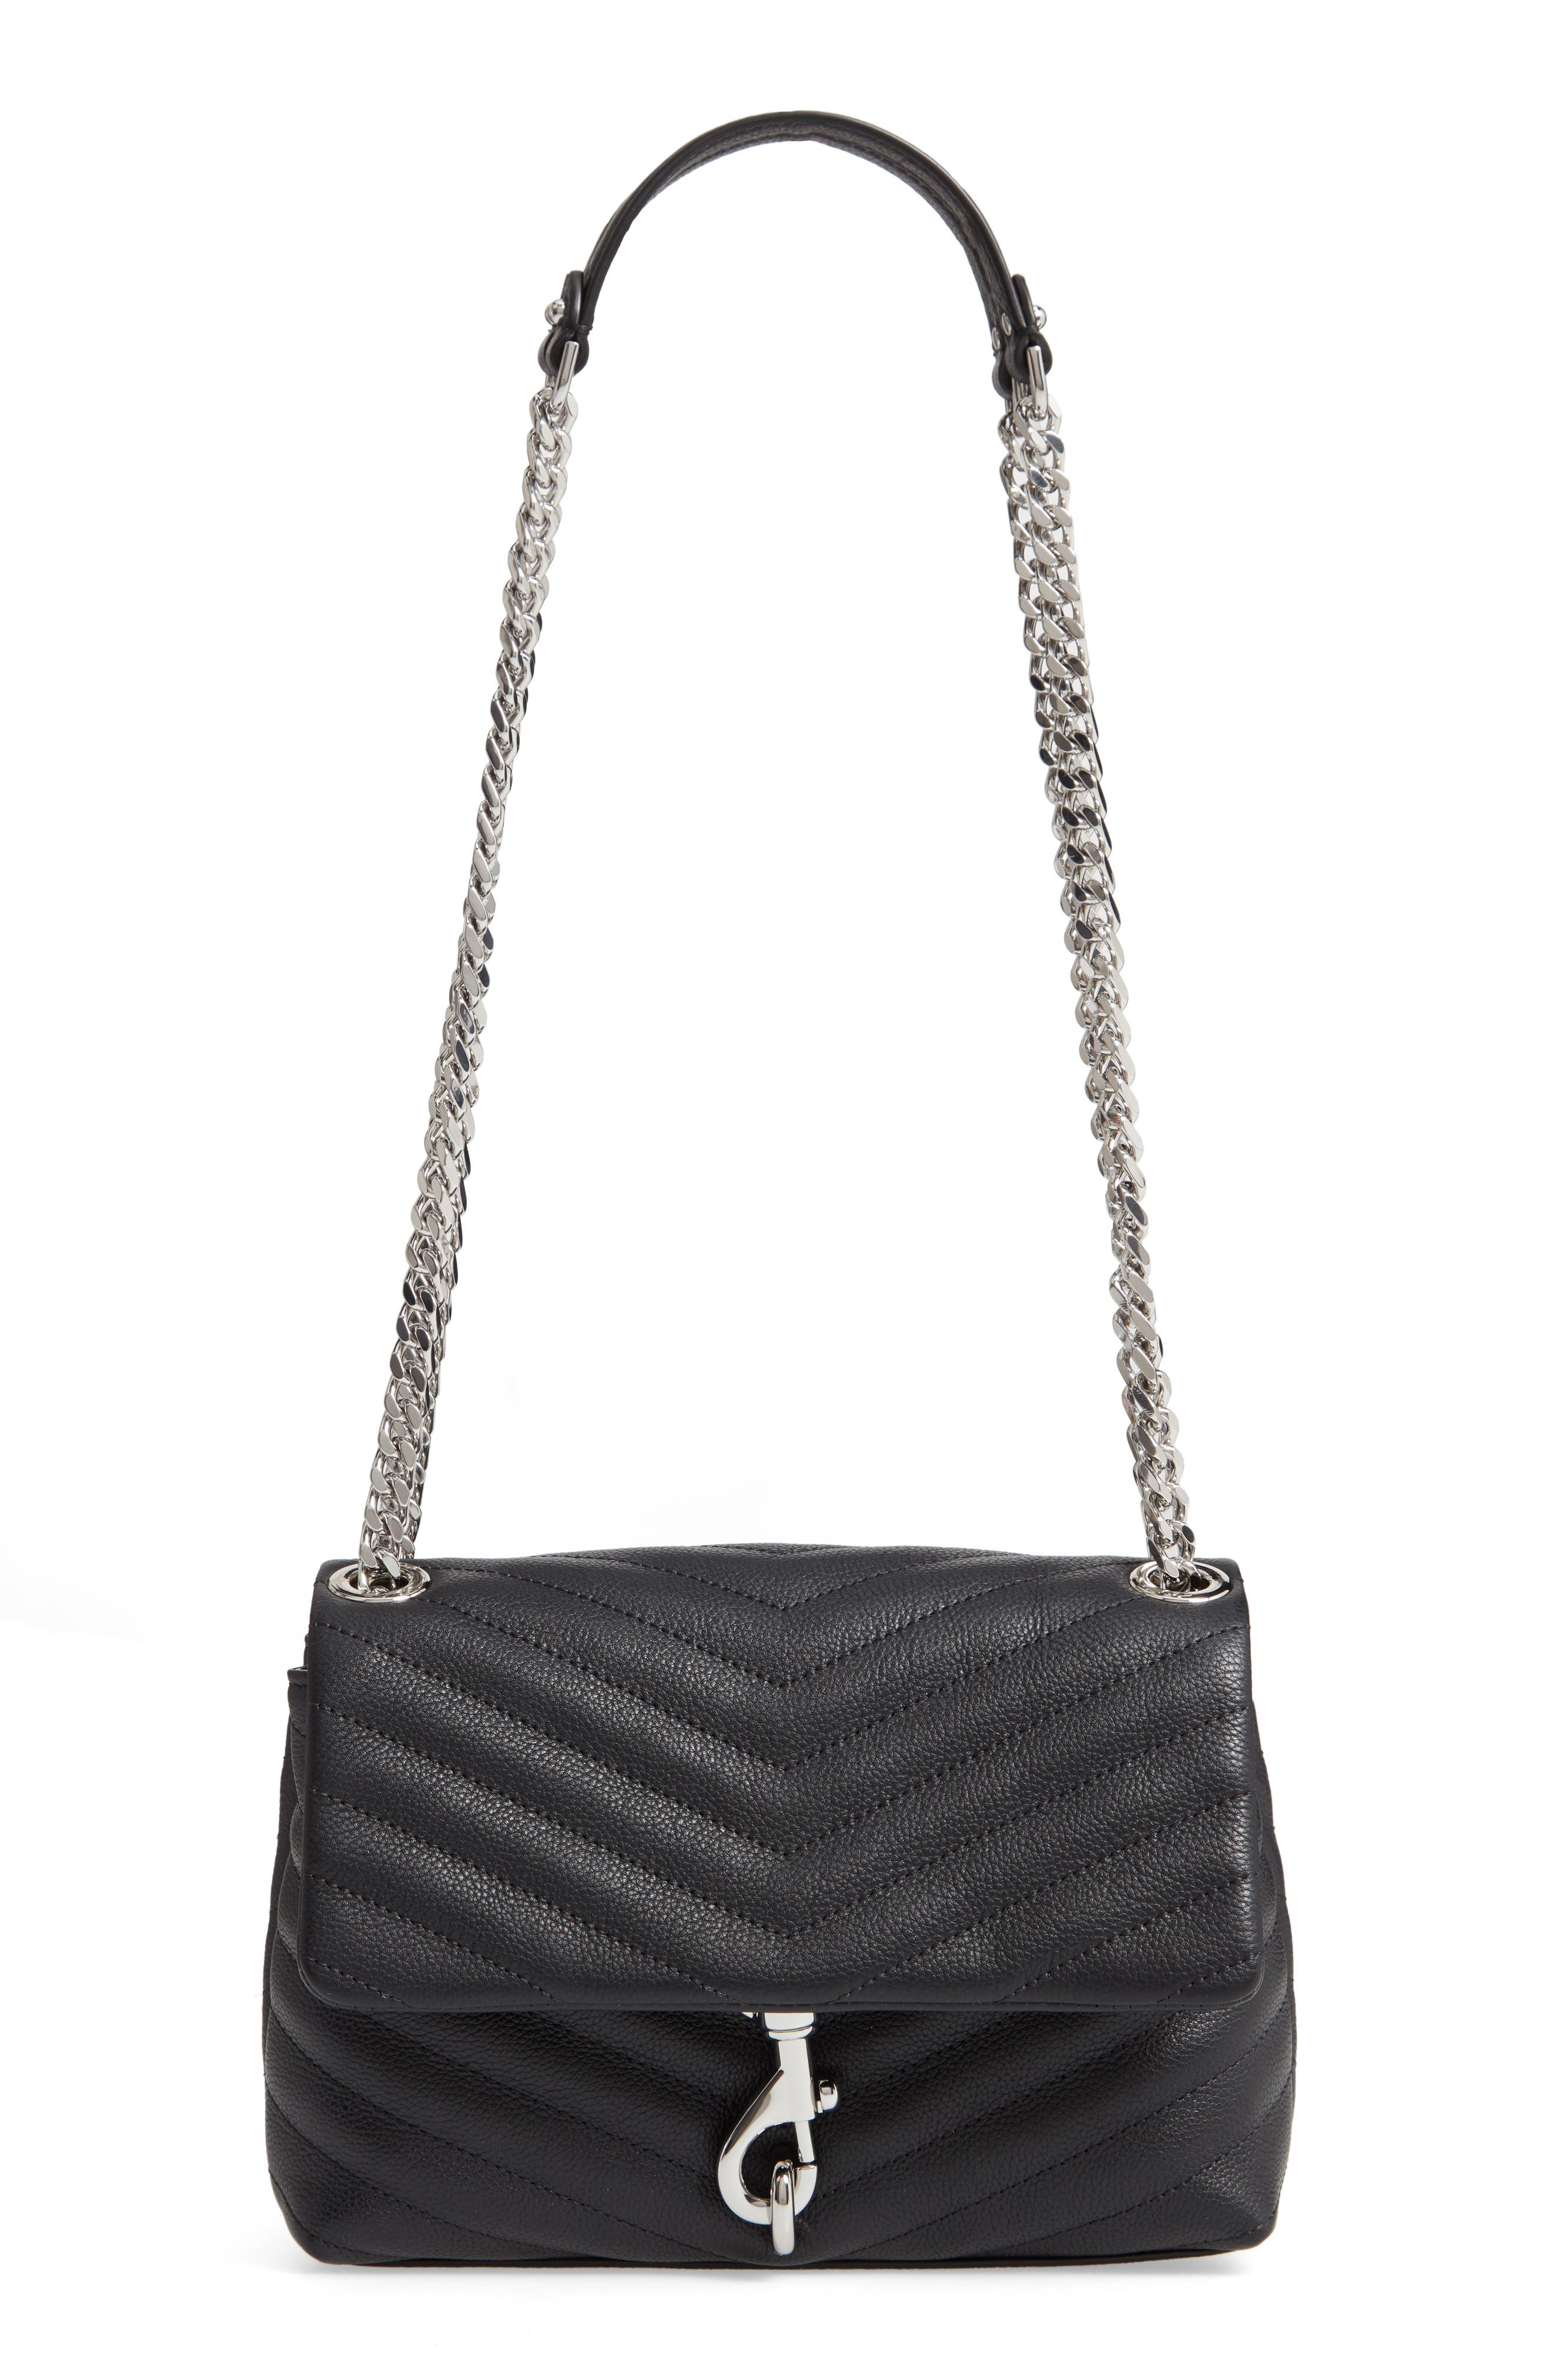 REBECCA MINKOFF Edie Quilted Leather Crossbody Bag, Main, color, BLACK